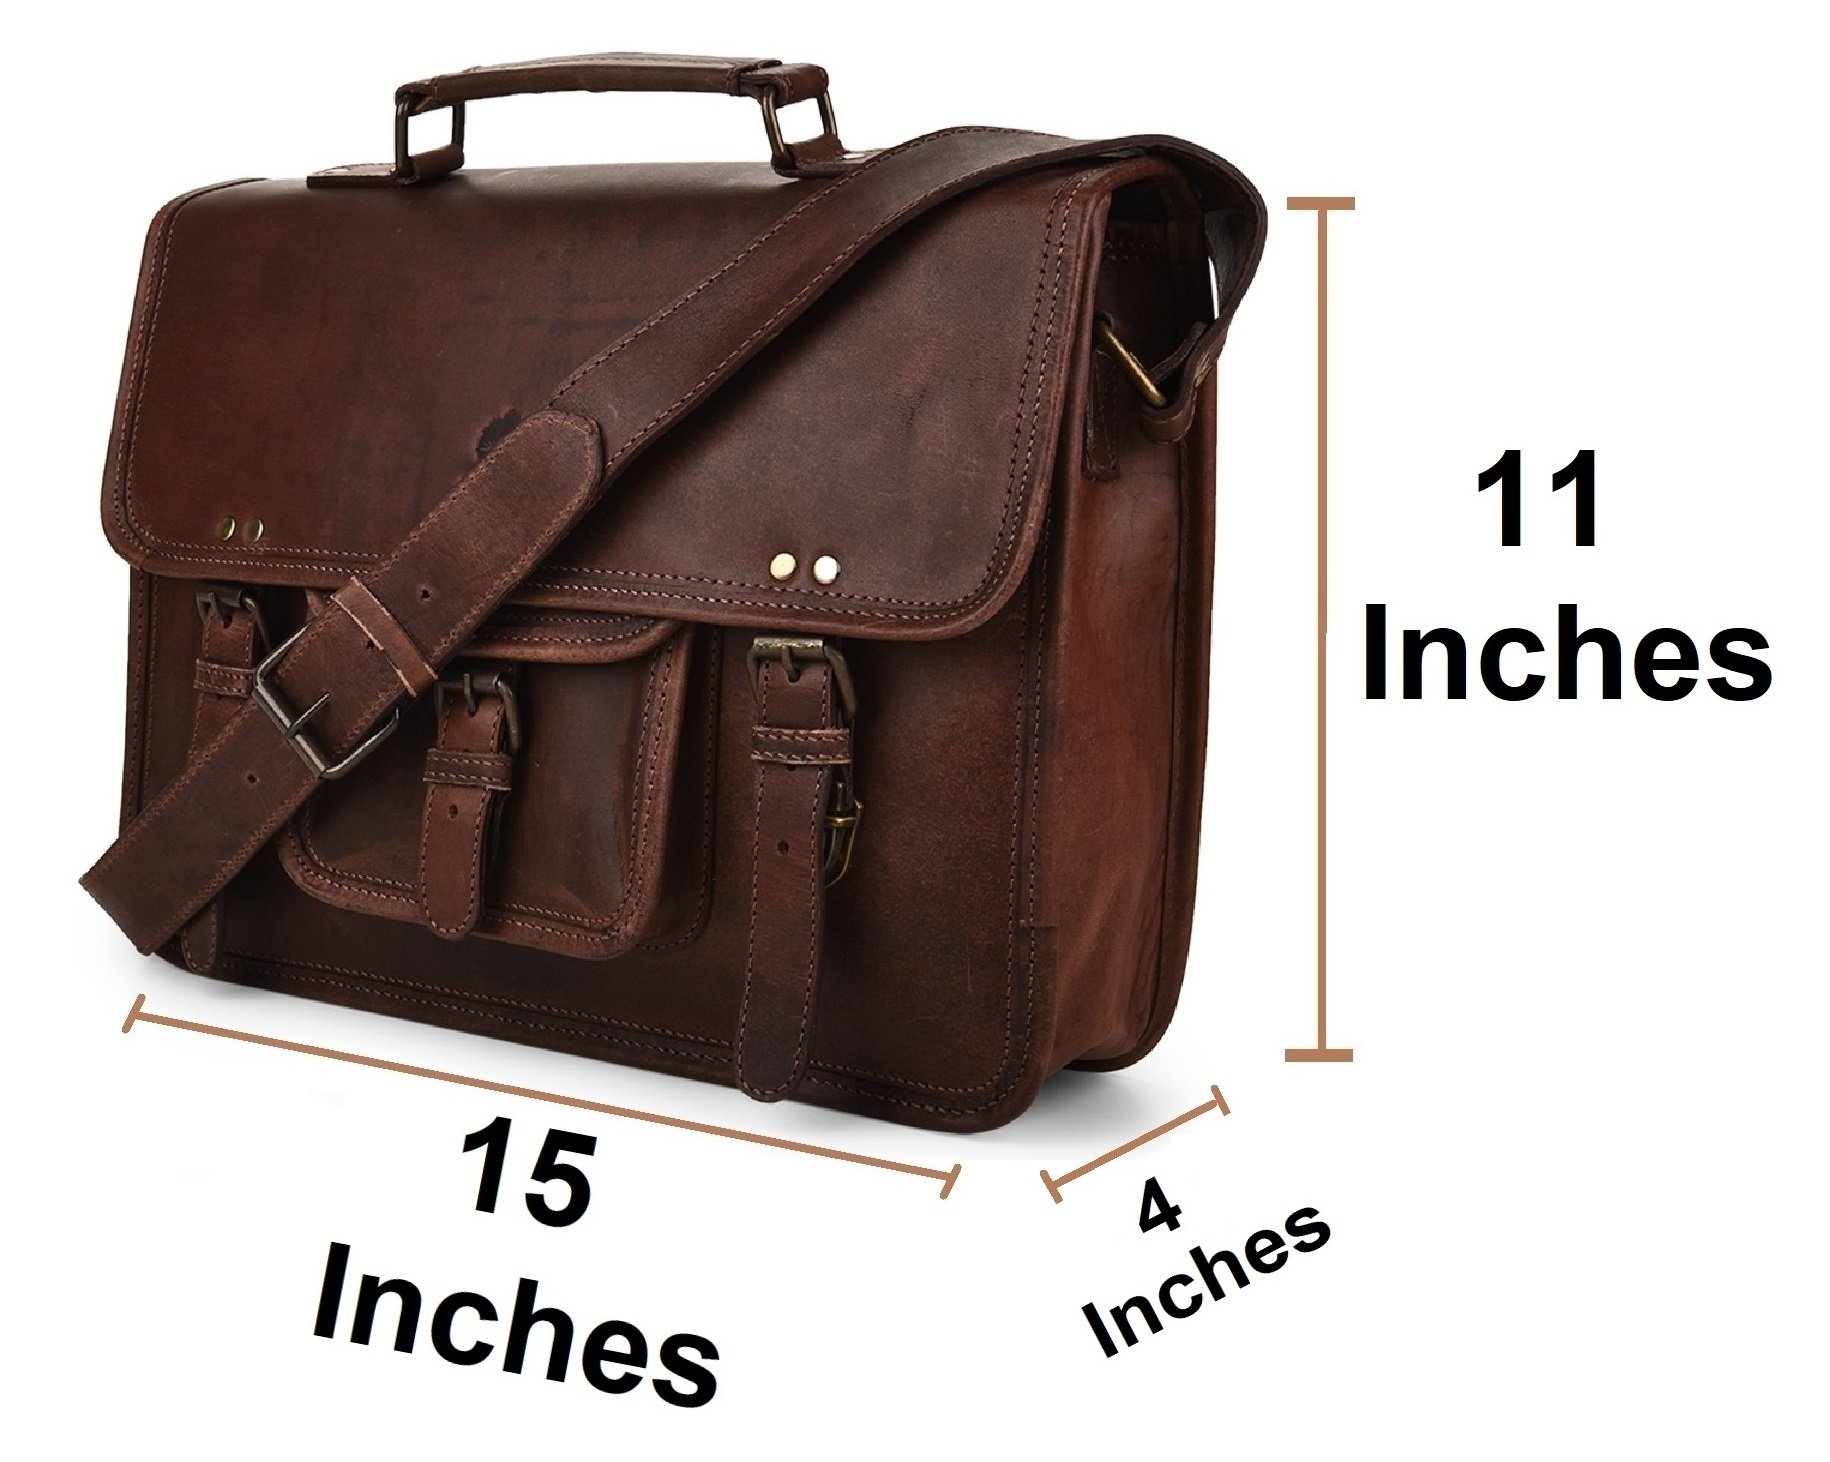 15 Inch Leather Vintage Rustic Crossbody Messenger Courier Satchel Bag Gift Men Women ~ Business Work Briefcase Carry Laptop Computer Book Handmade Rugged & Distressed ~ Everyday Office College School by RusticTown (Image #2)